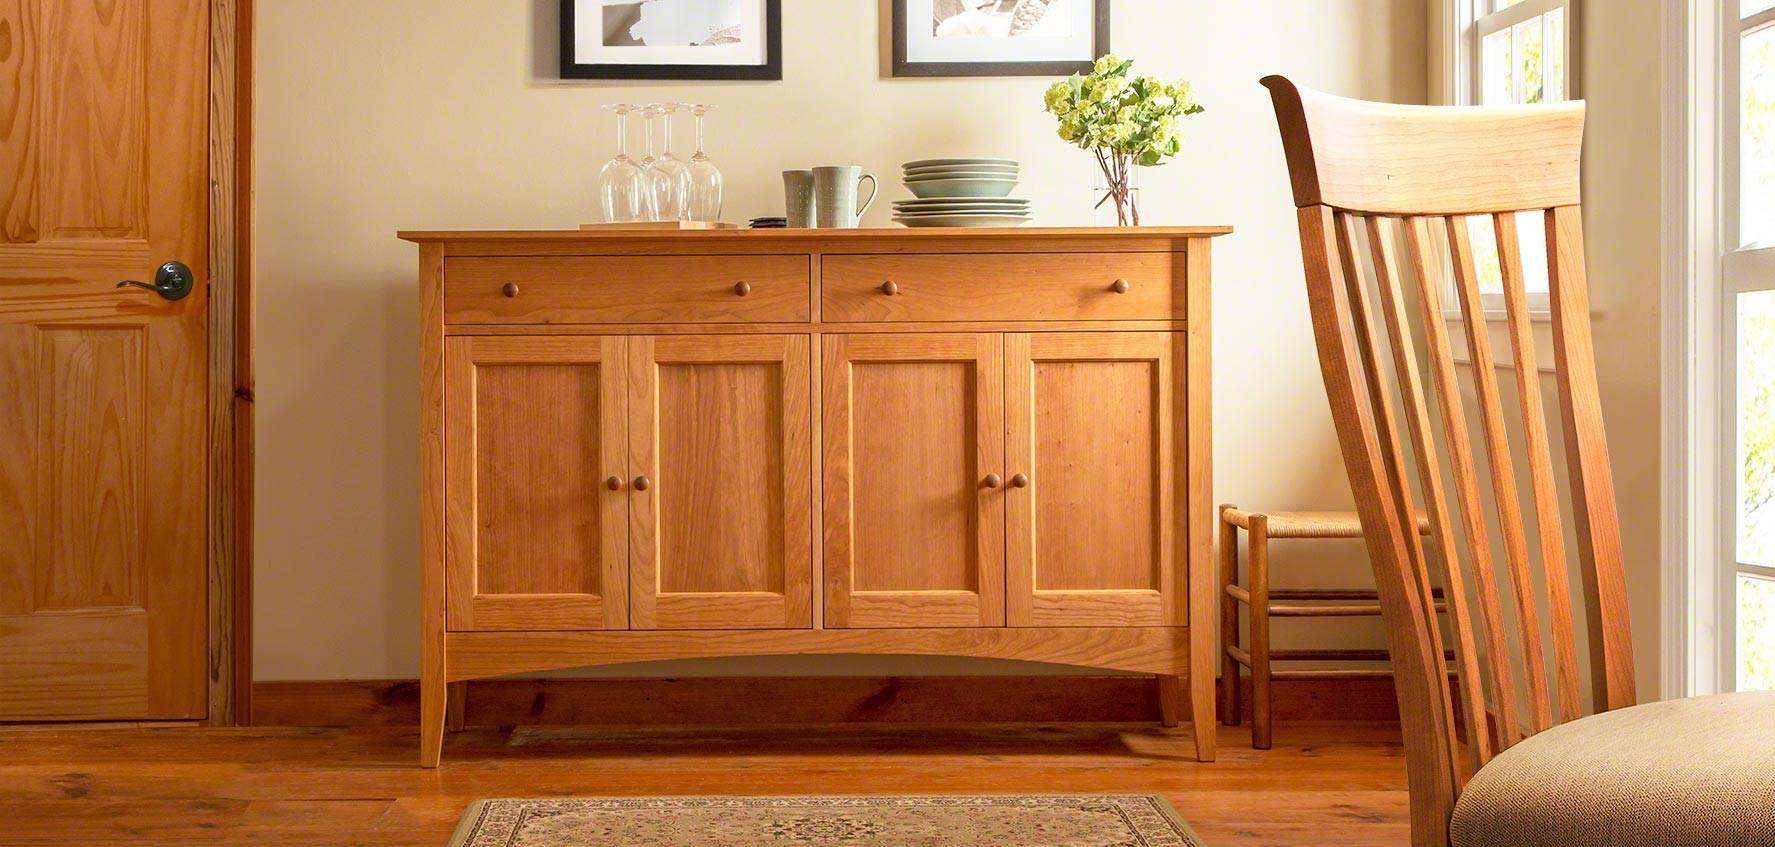 Solid Wood Sideboards, Buffets, & Hutches – Vermont Woods Studios With Current Solid Wood Sideboards (#15 of 15)